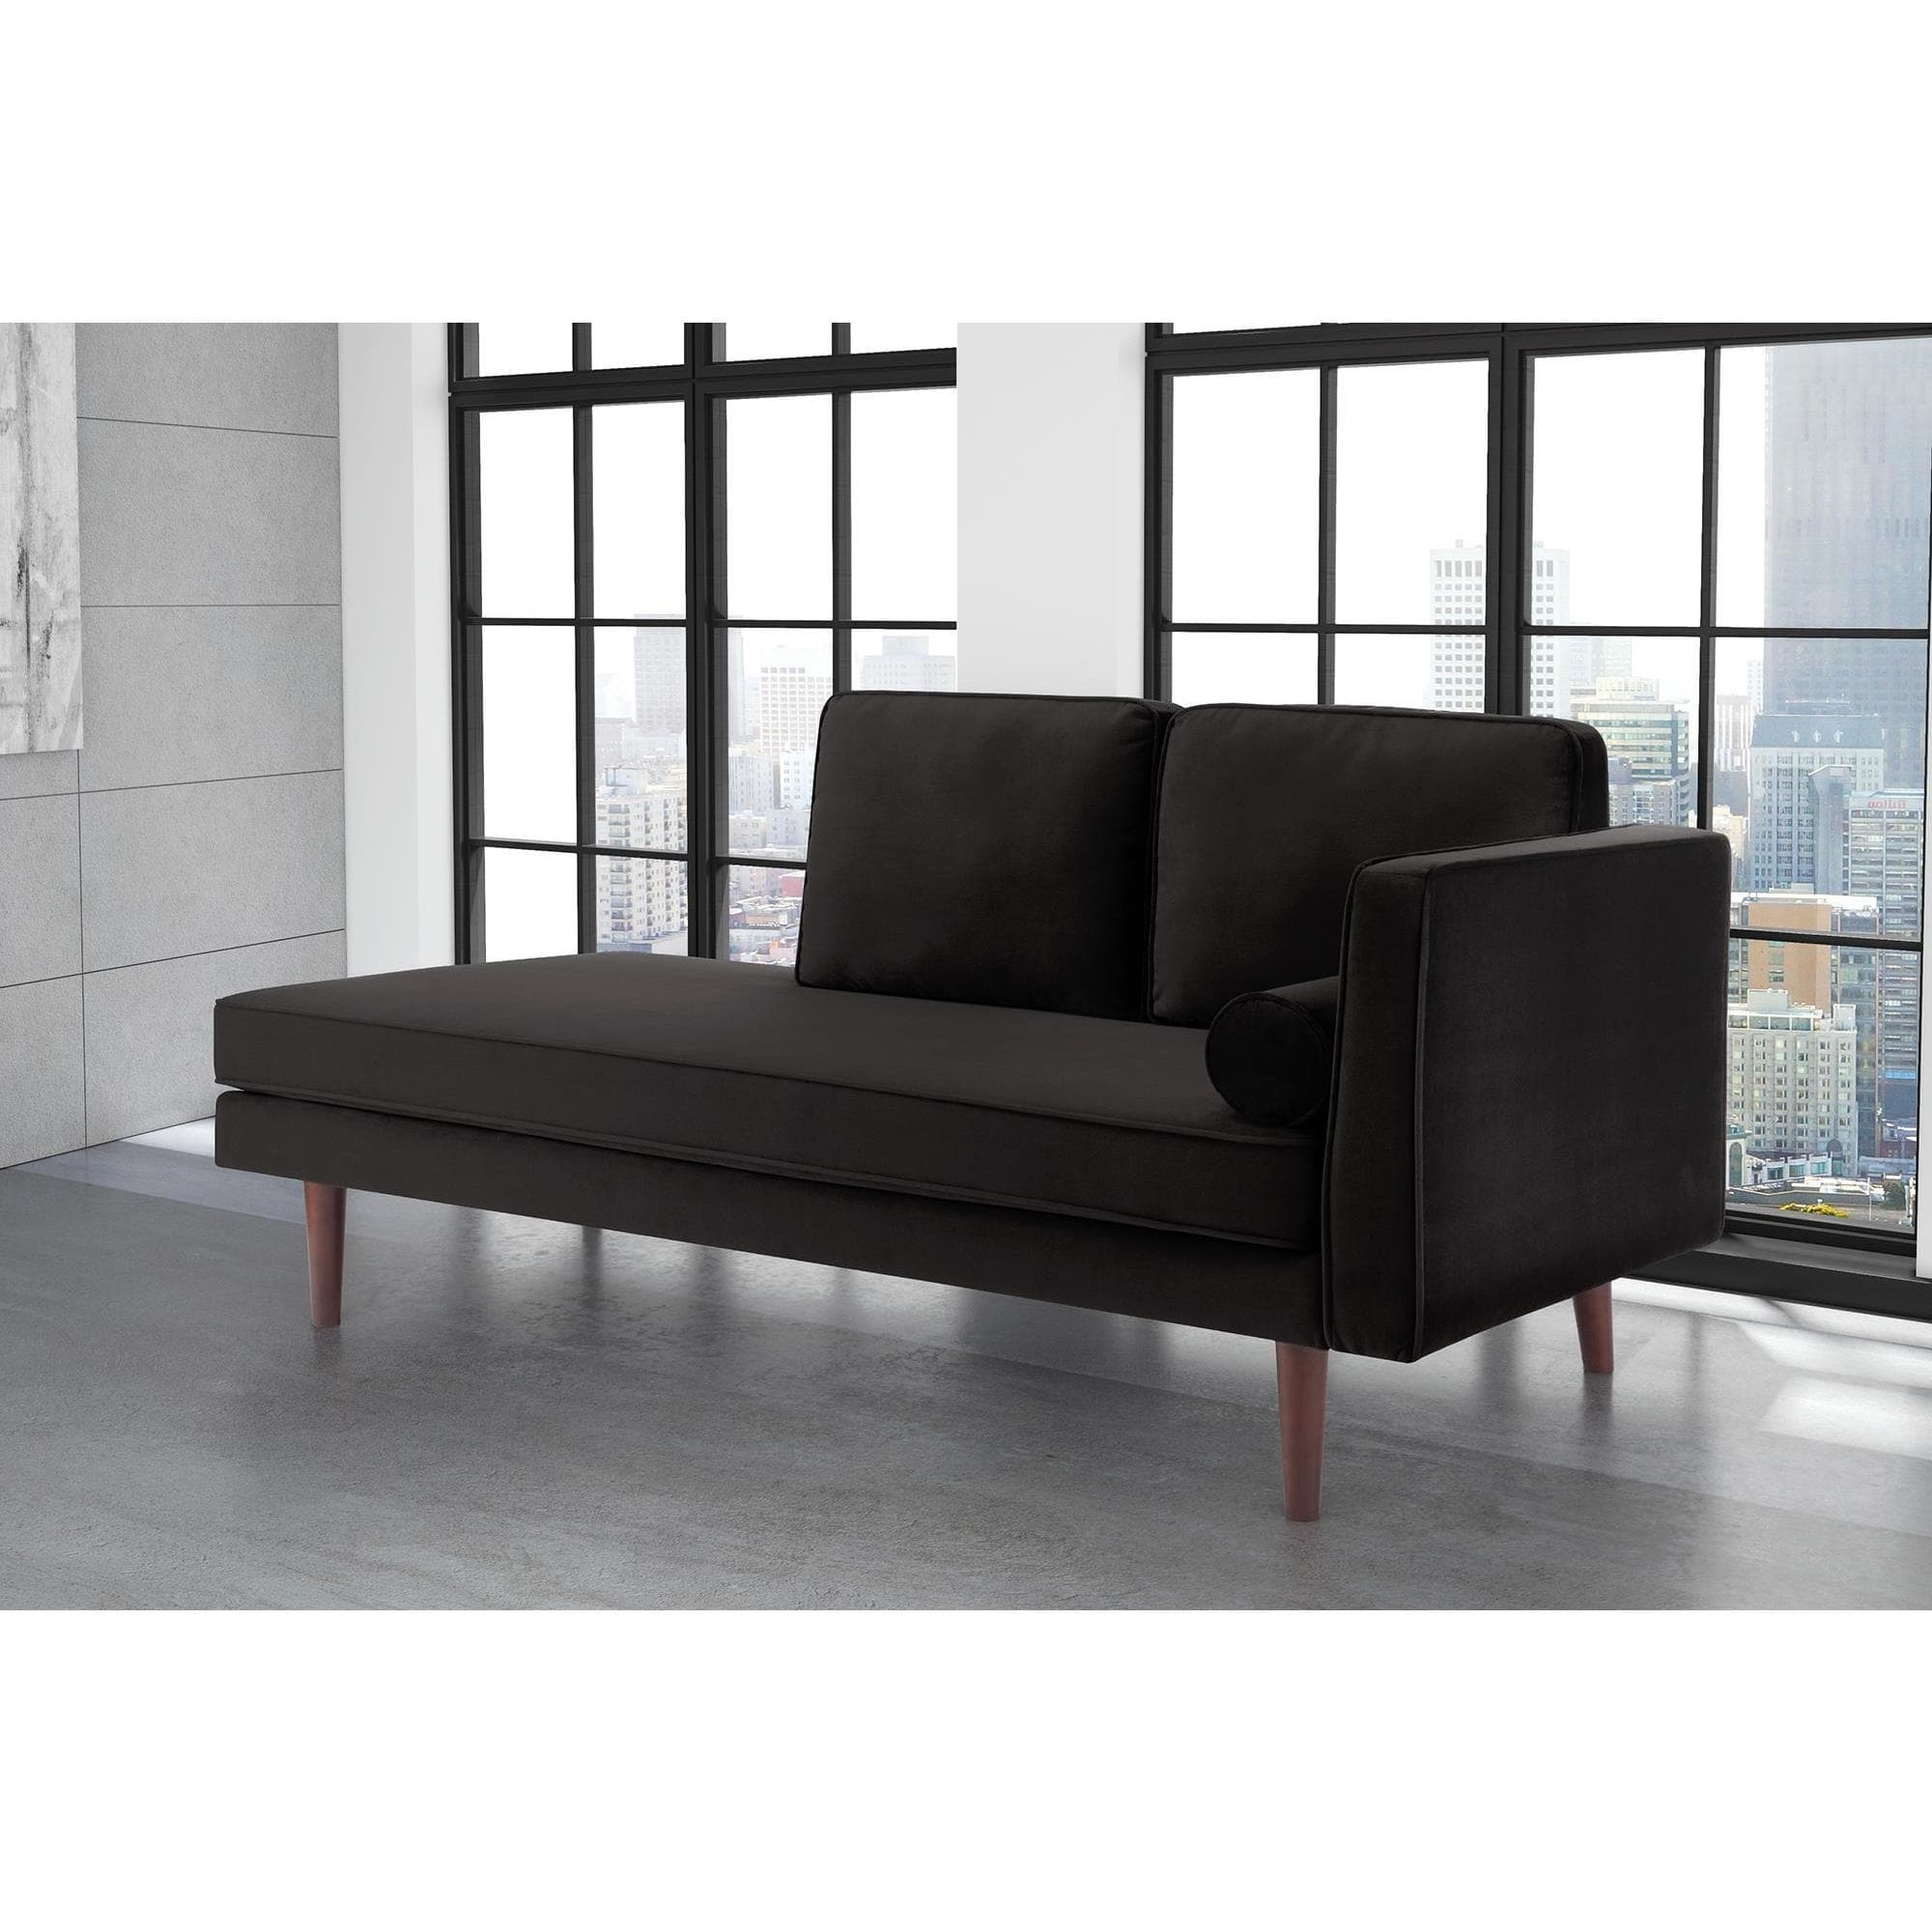 Dhp Nola Mid Century Modern Upholstered Black Velvet Daybed With Regard To 2018 Mid Century Modern Chaises (View 3 of 15)